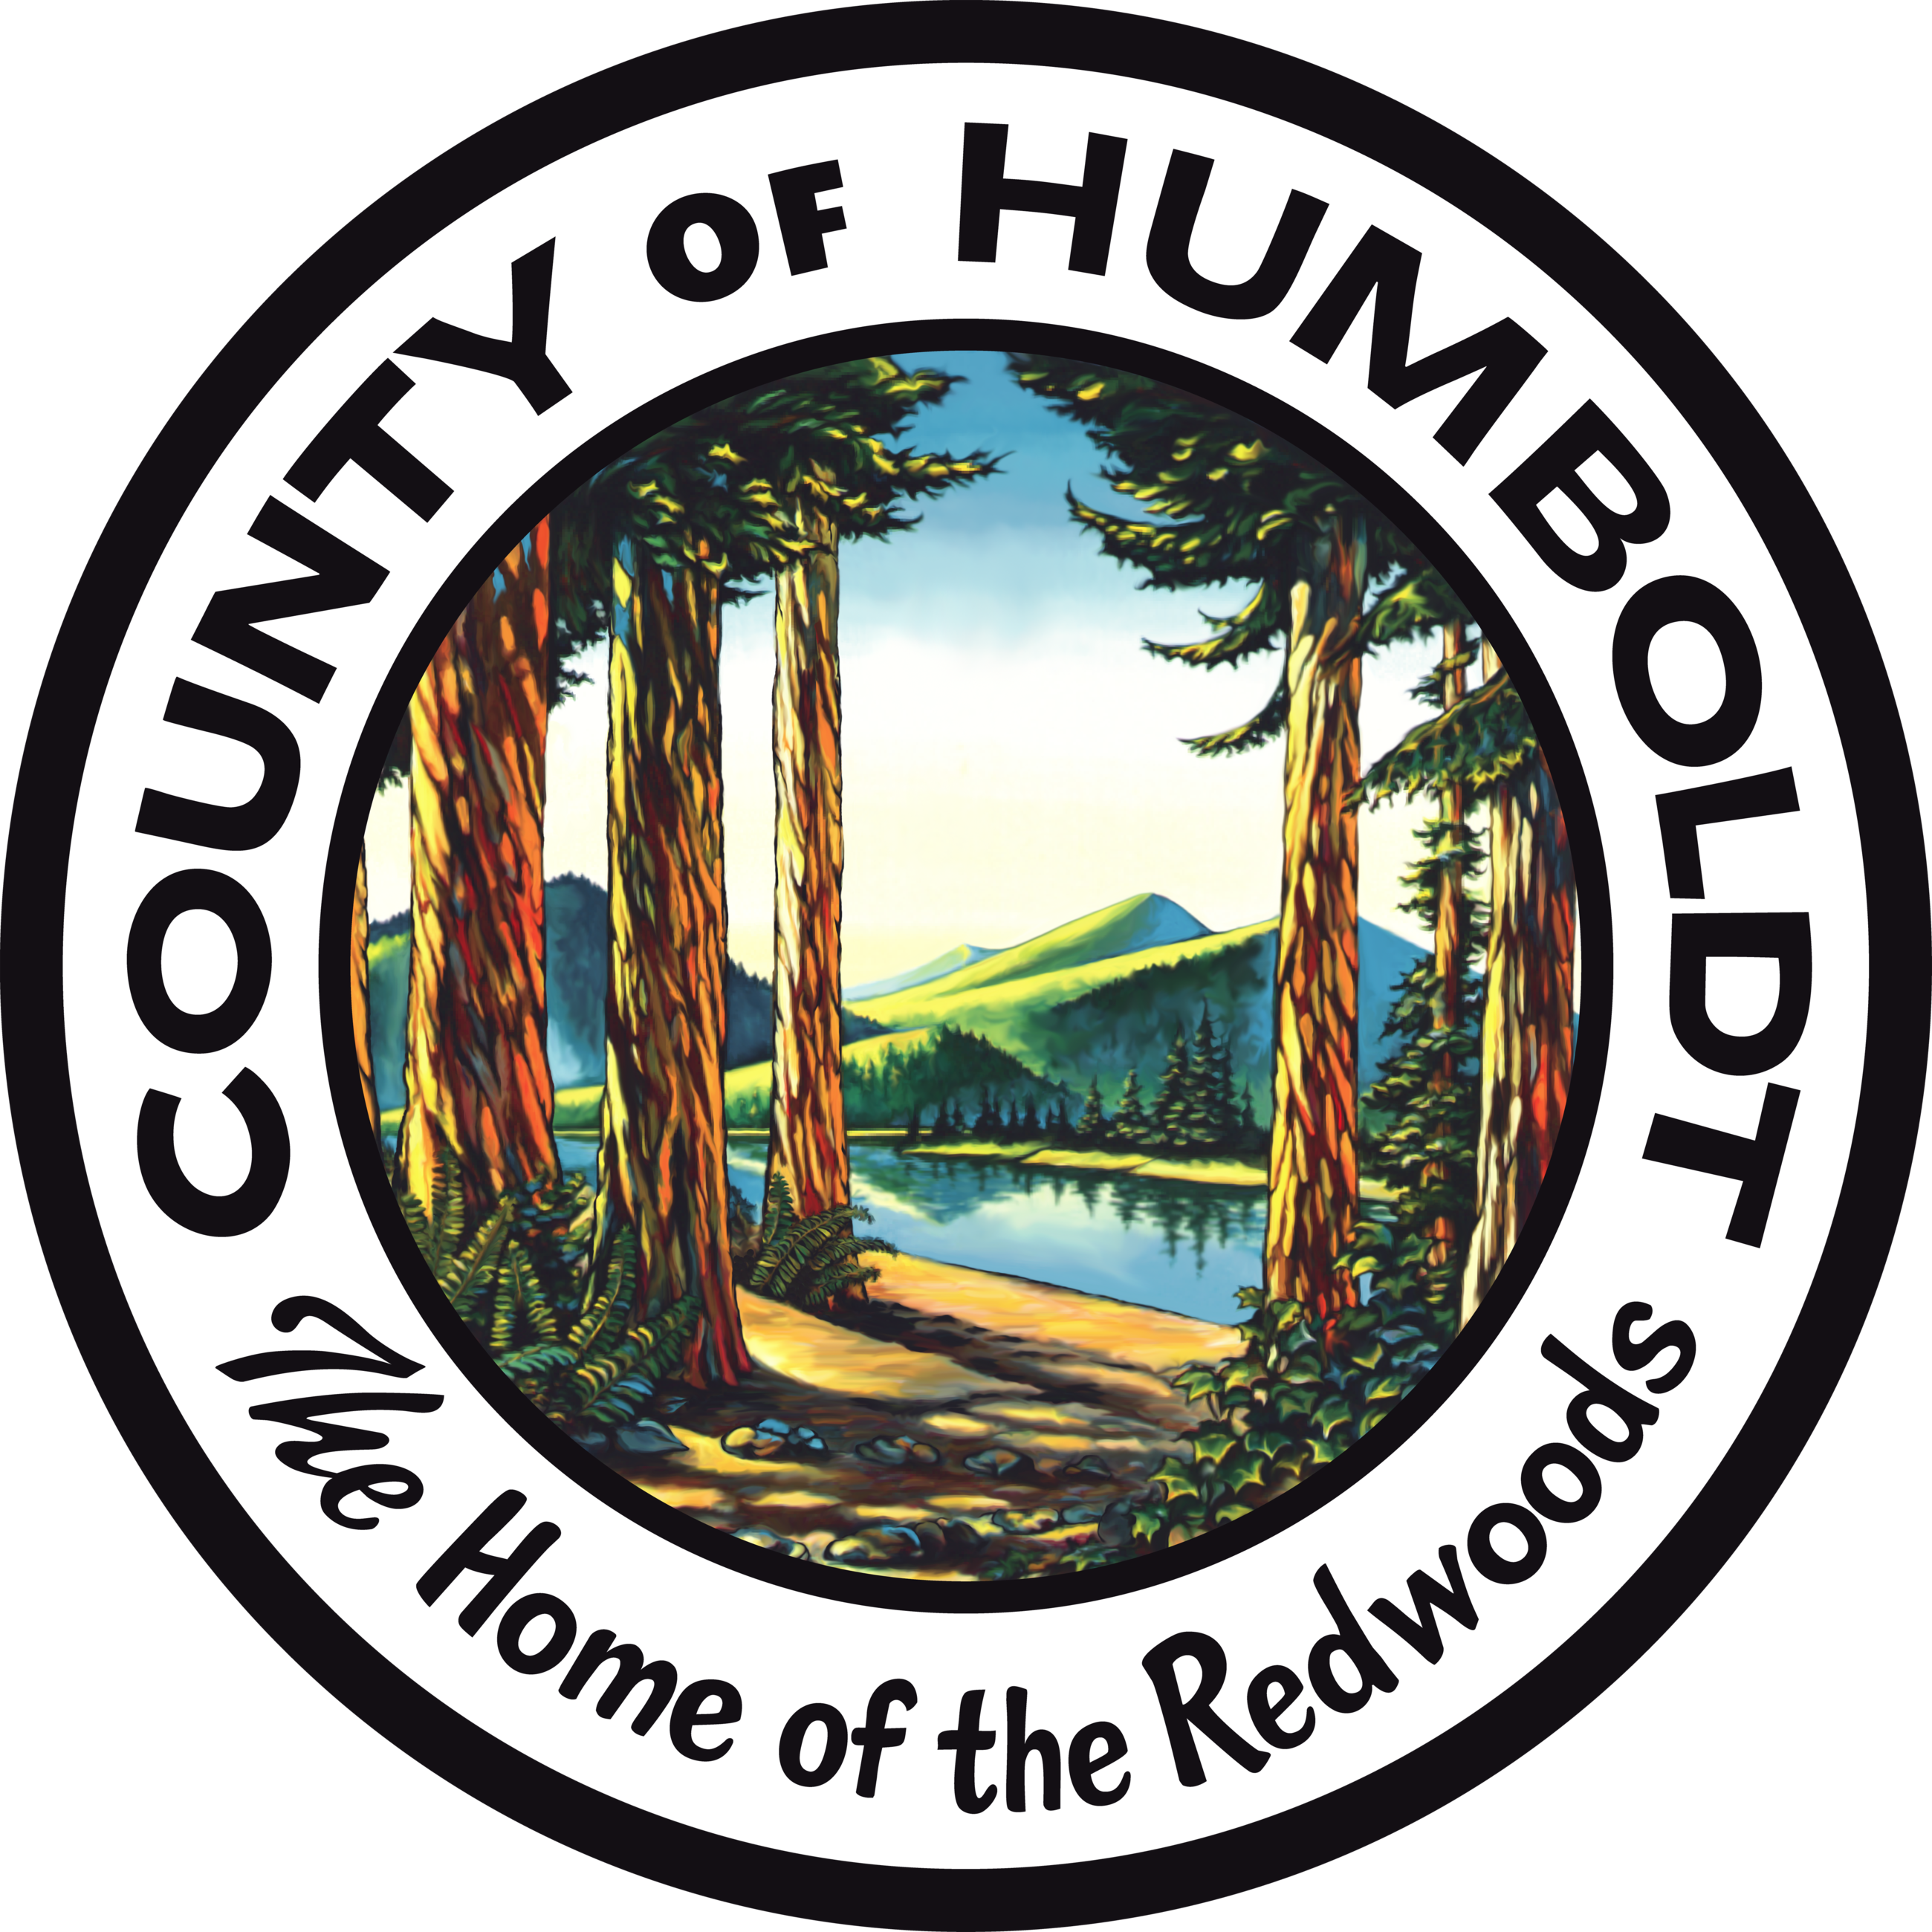 Planning clipart review meeting. Humboldt county ca official